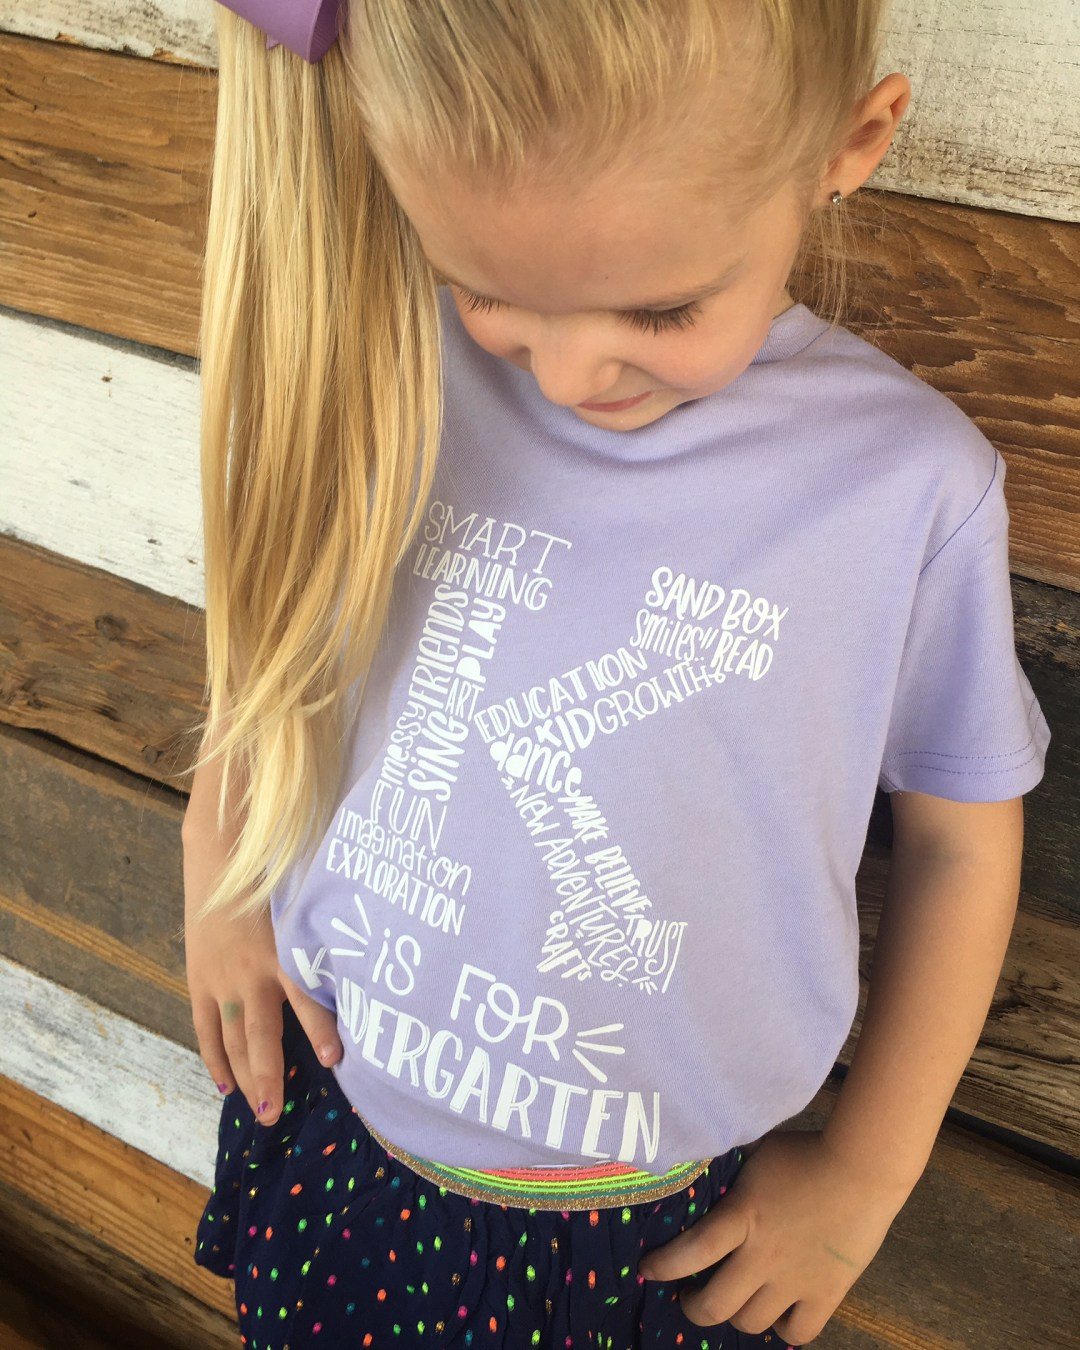 My Wish For You... On Your First Day Of Kindergarten | The Blue Envelope - K is for Kindergarten Tee | Back to School Looks | A Letter To My daughter on her 1st day of Kindergarten